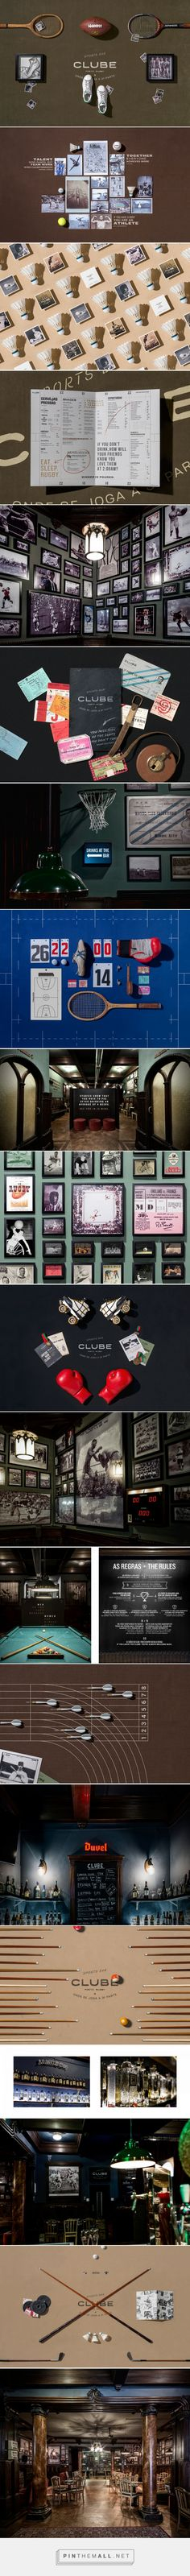 CLUBE Sports Bar and Restaurant Branding and Menu Design by Volta | Fivestar Branding Agency – Design and Branding Agency & Curated Inspiration Gallery